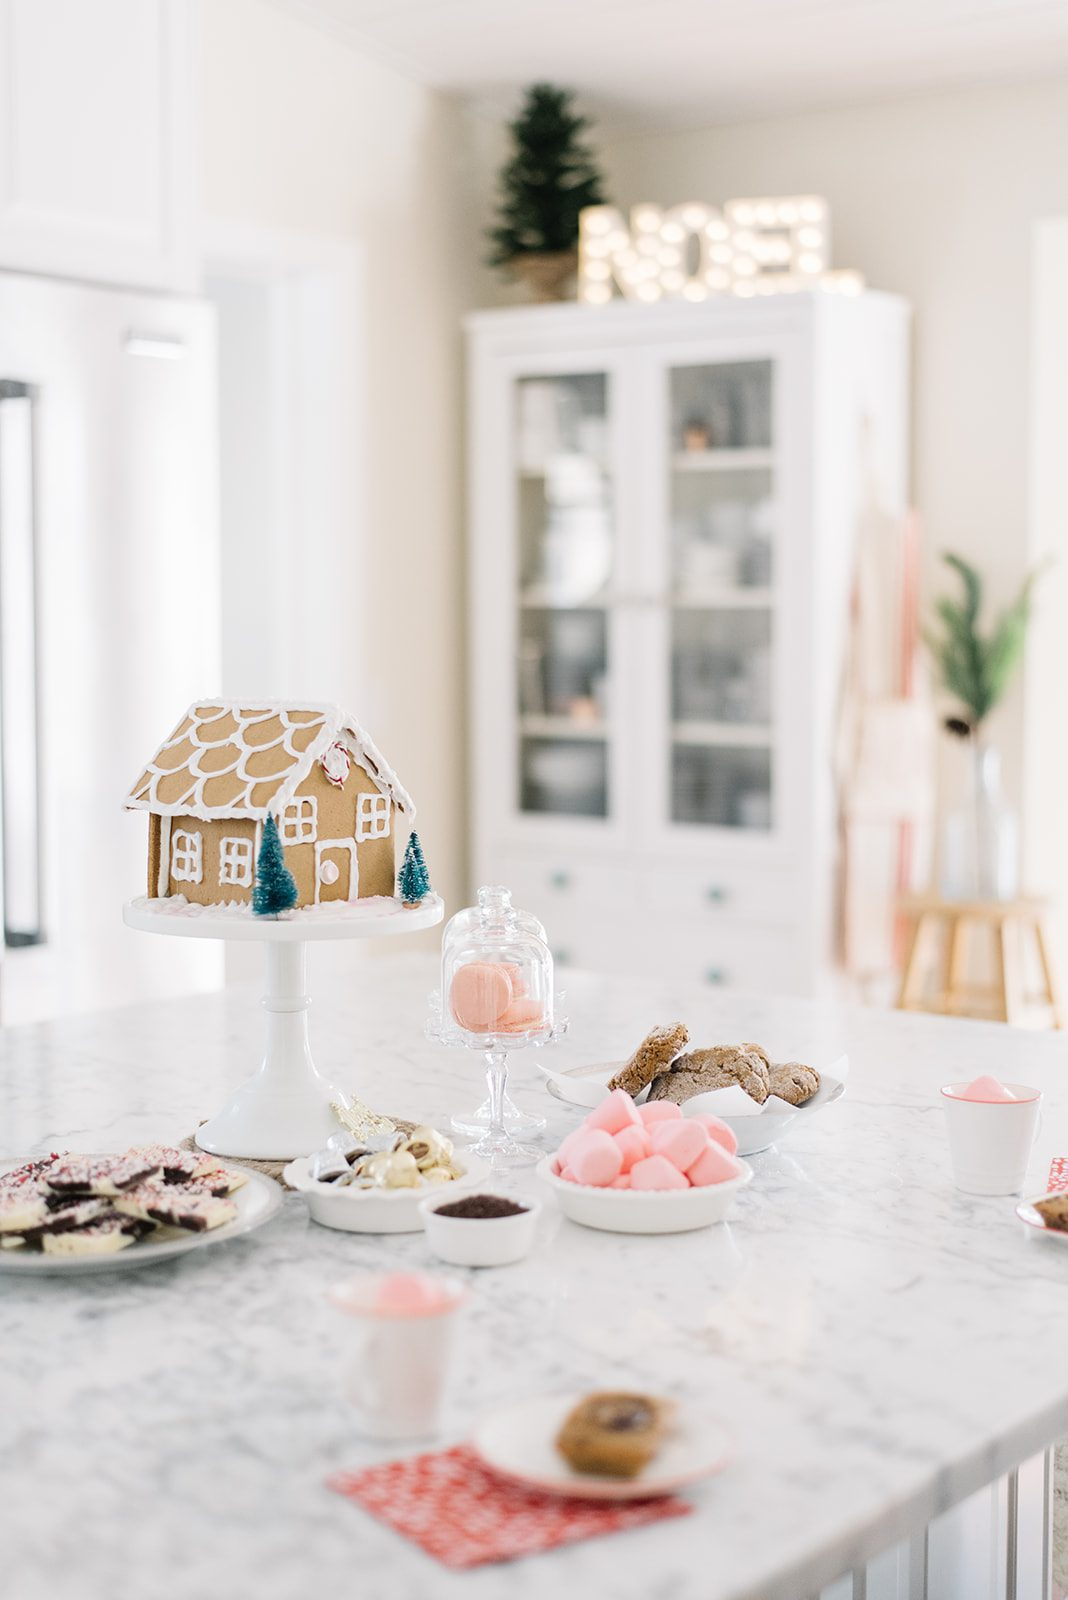 gingerbread house sits on a white cake pedestal beside cookies and marshmallows